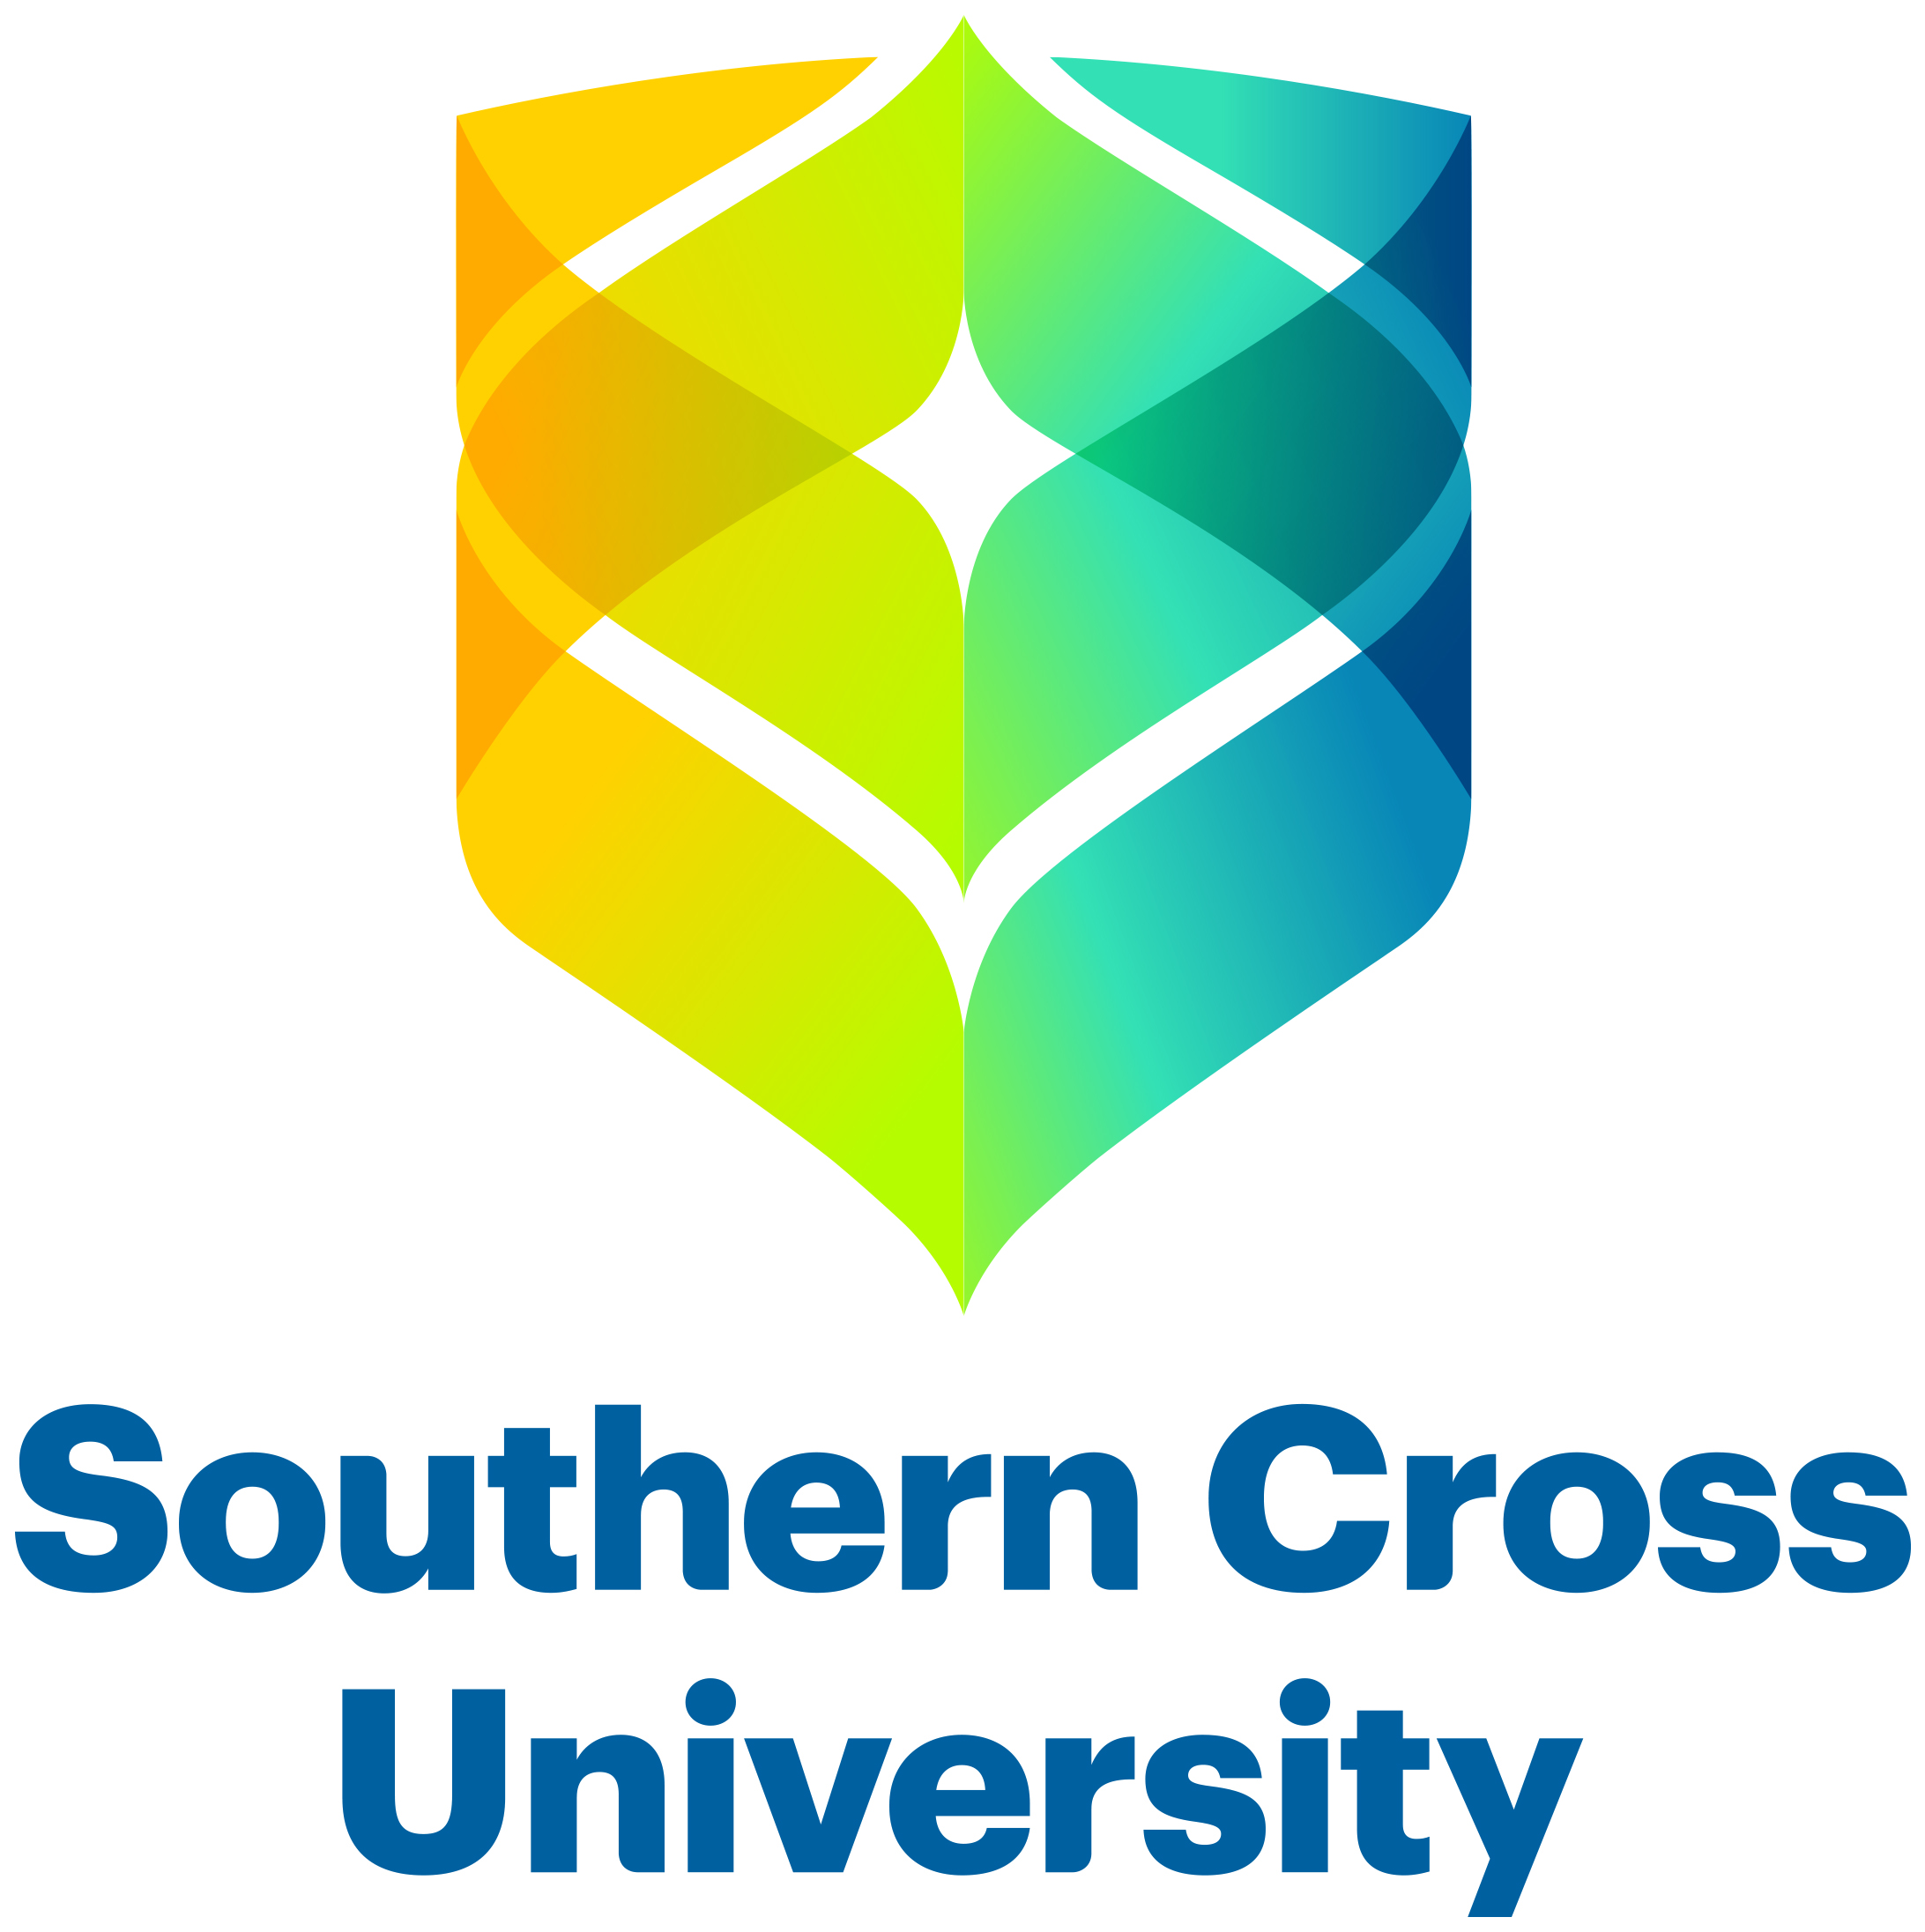 Southern Cross University - Bachelor of Engineering (Honours) in Mechanical Engineering